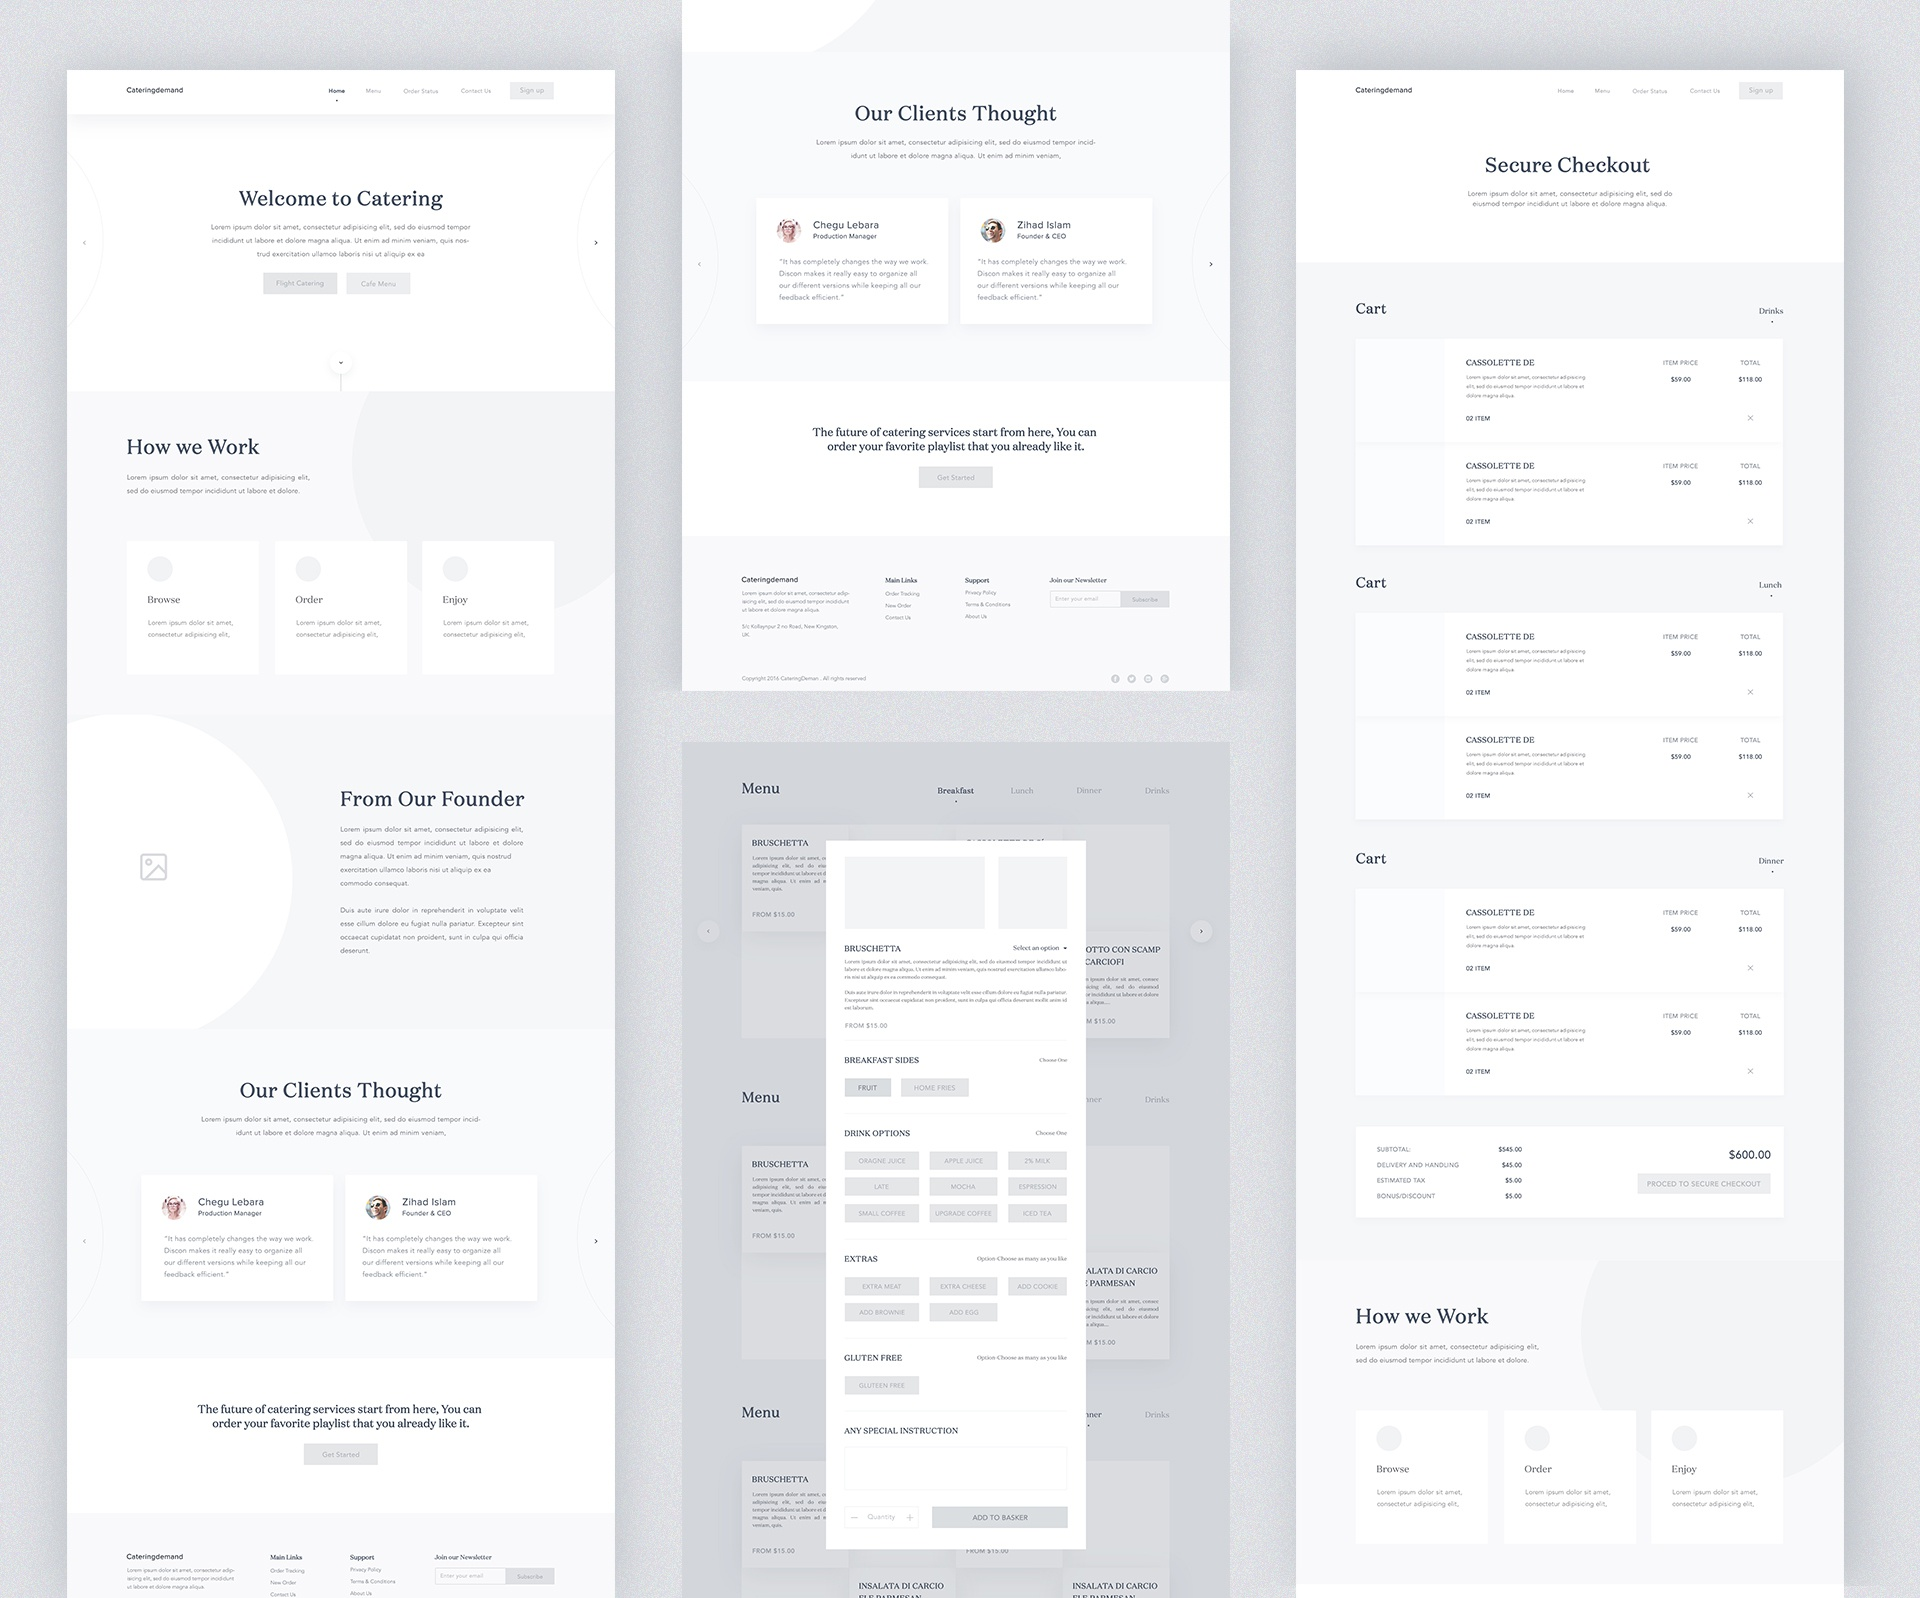 Catering demand High Fiderally Wireframe by Masudur Rahman on Dribbble